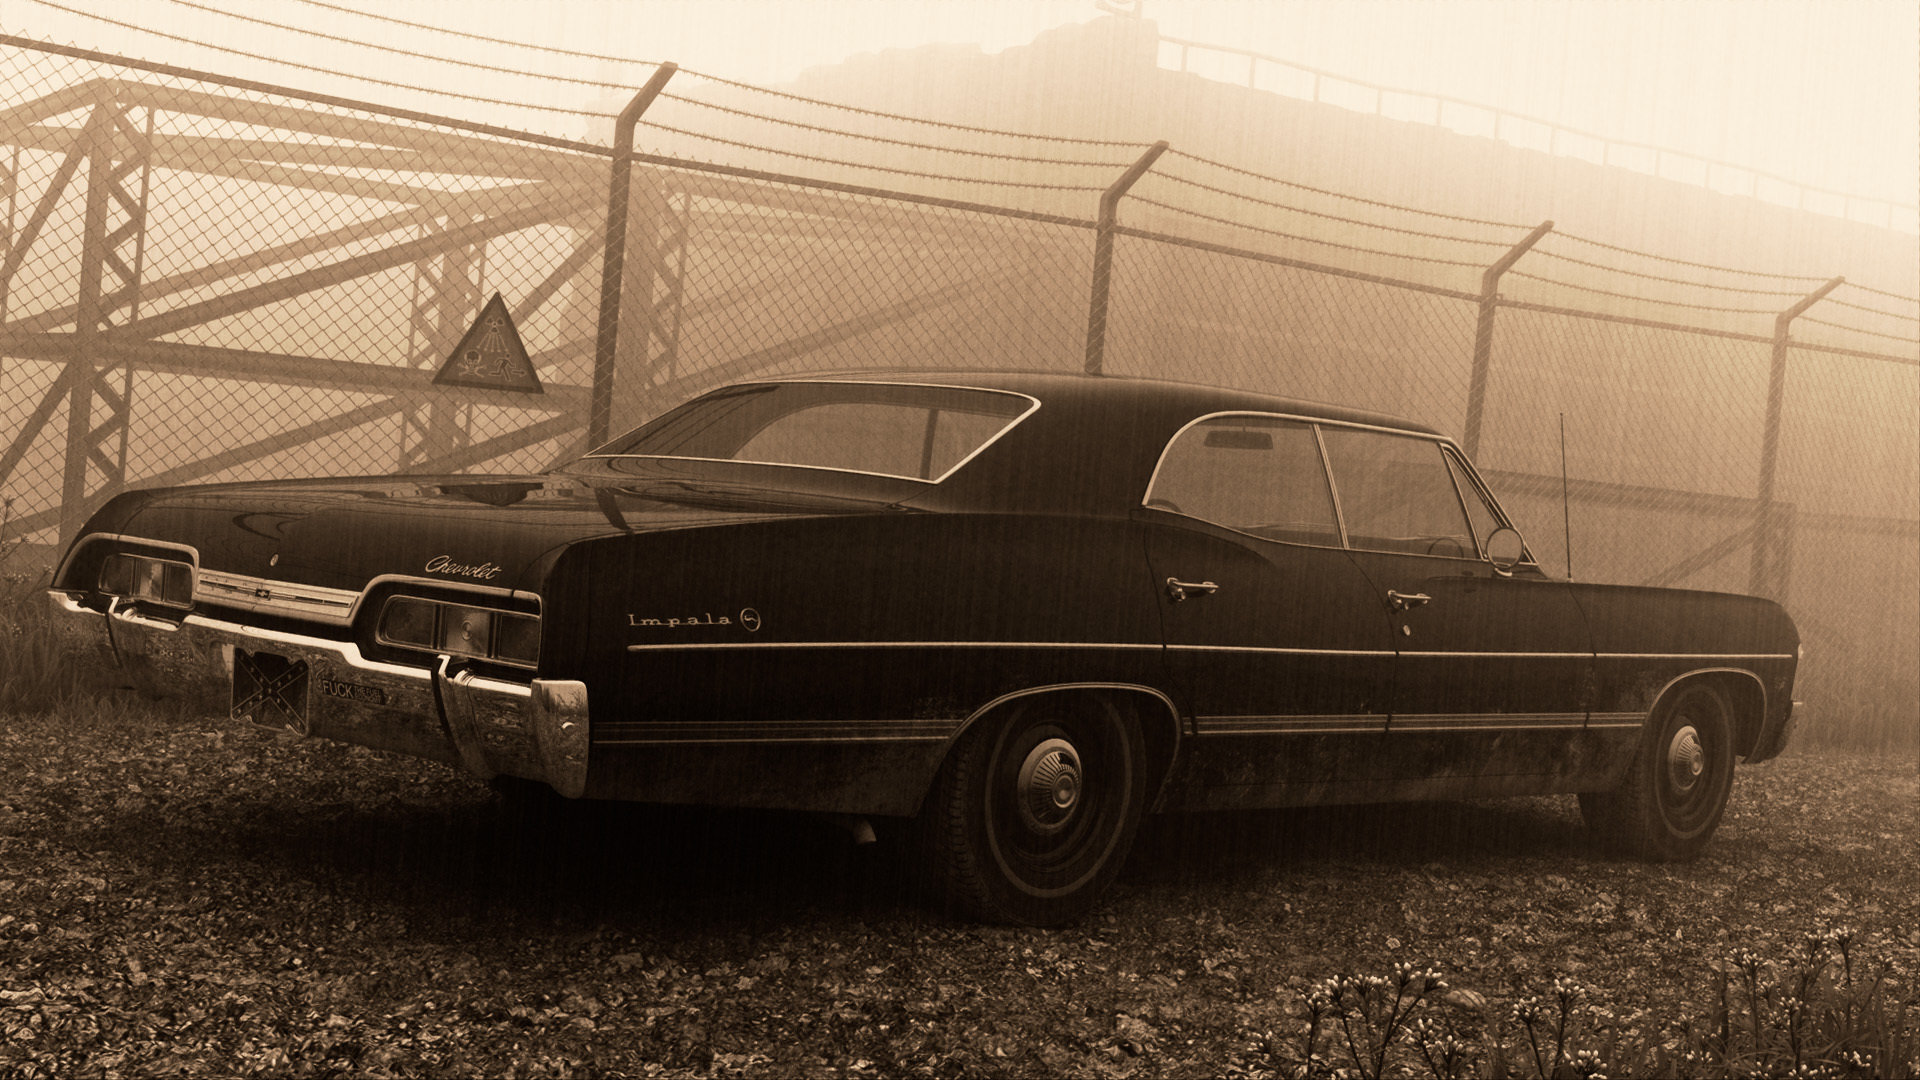 Chevy Impala Wallpaper Image Group 31 1920x1080